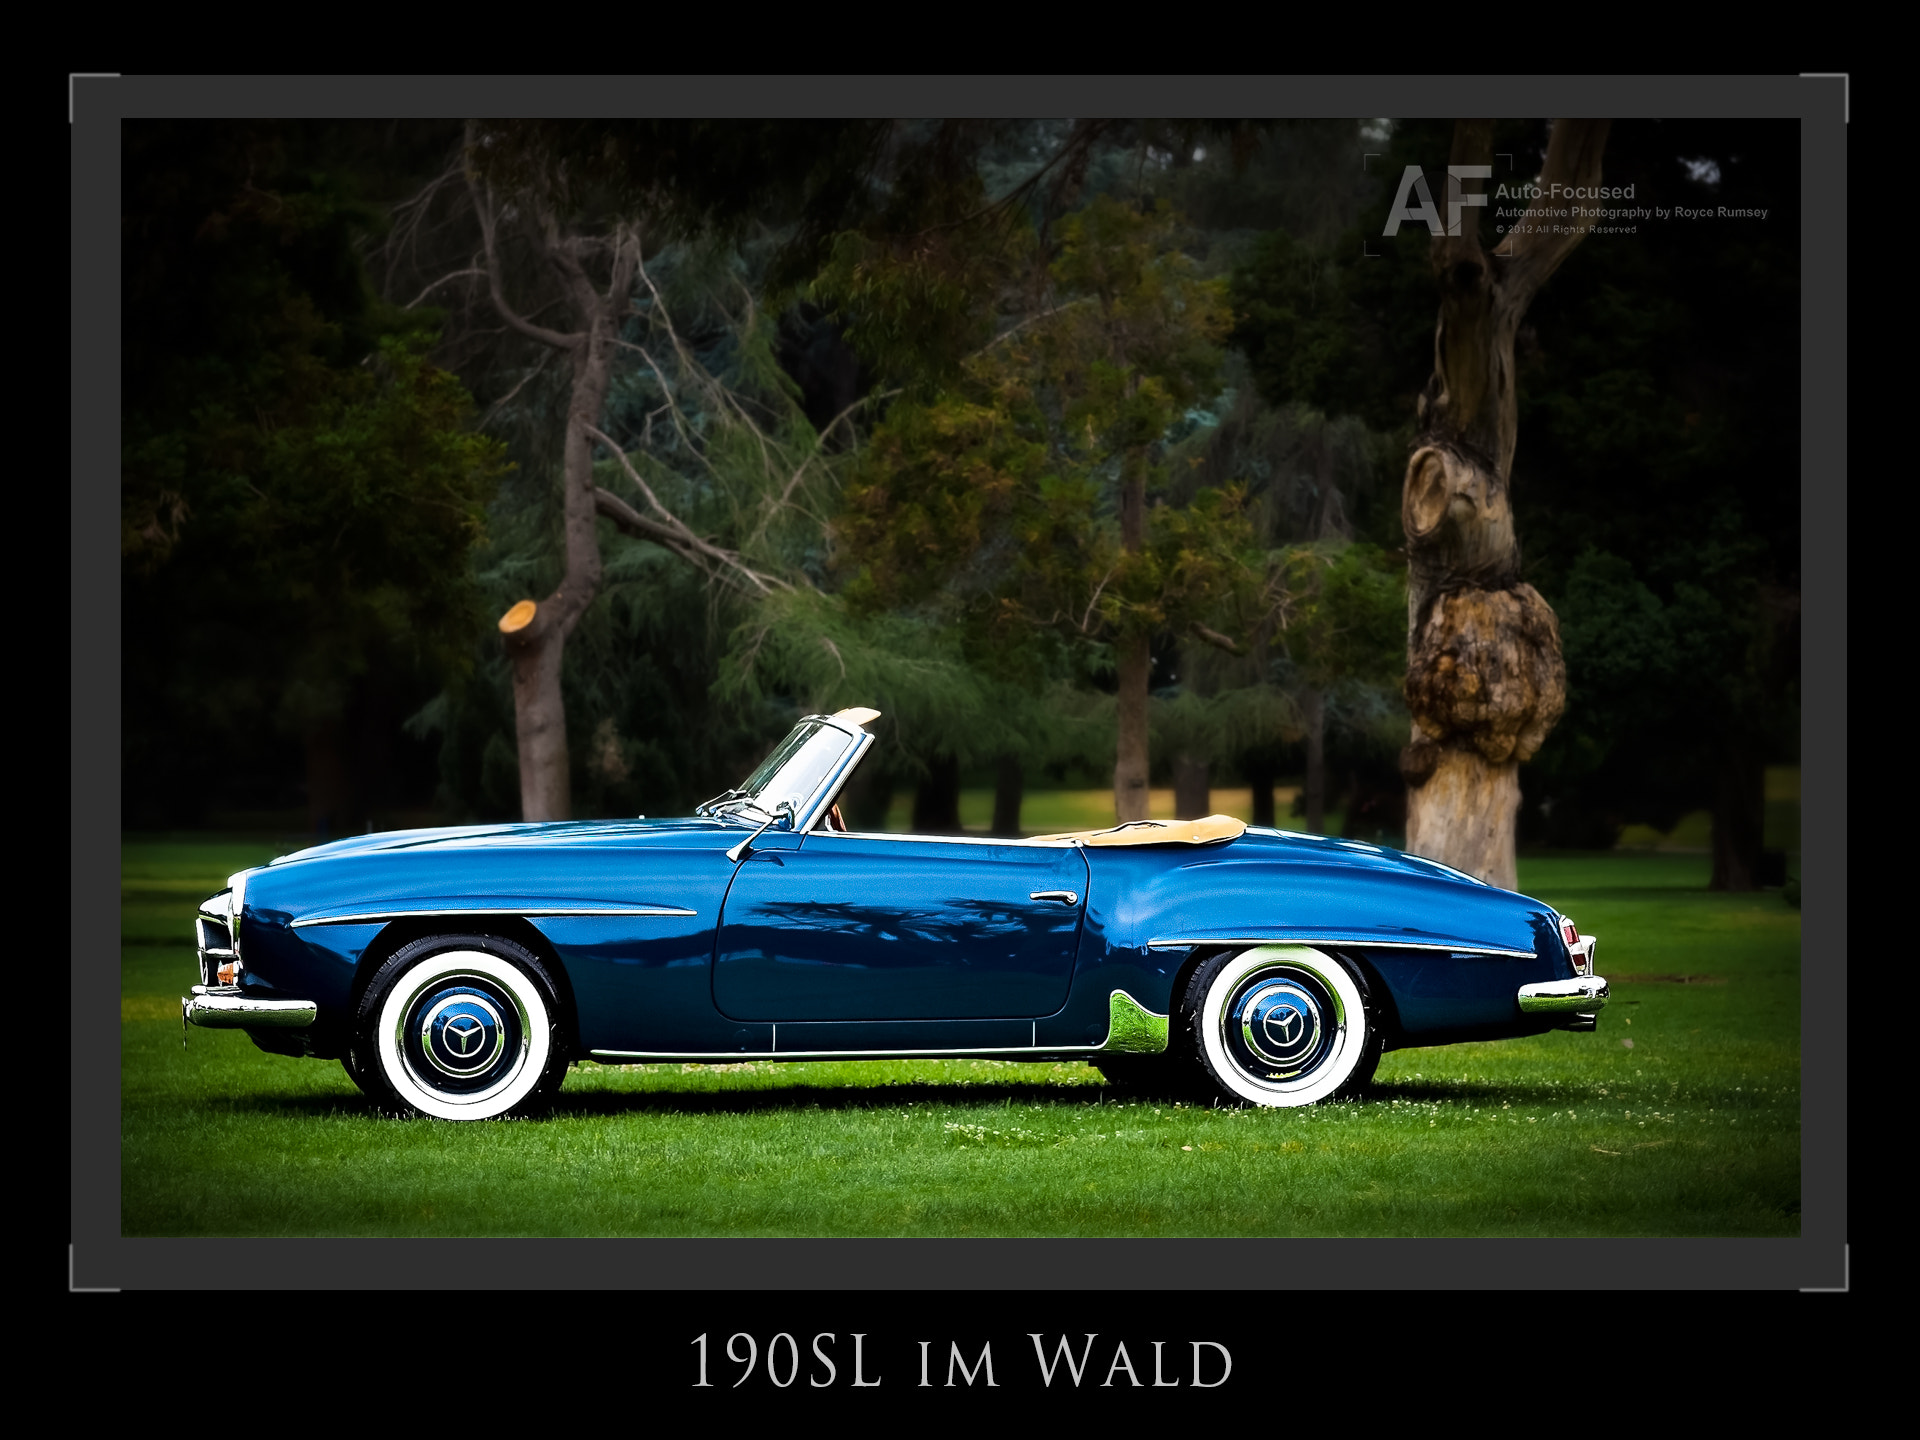 Photograph 190SL in the Woods by Royce Rumsey on 500px